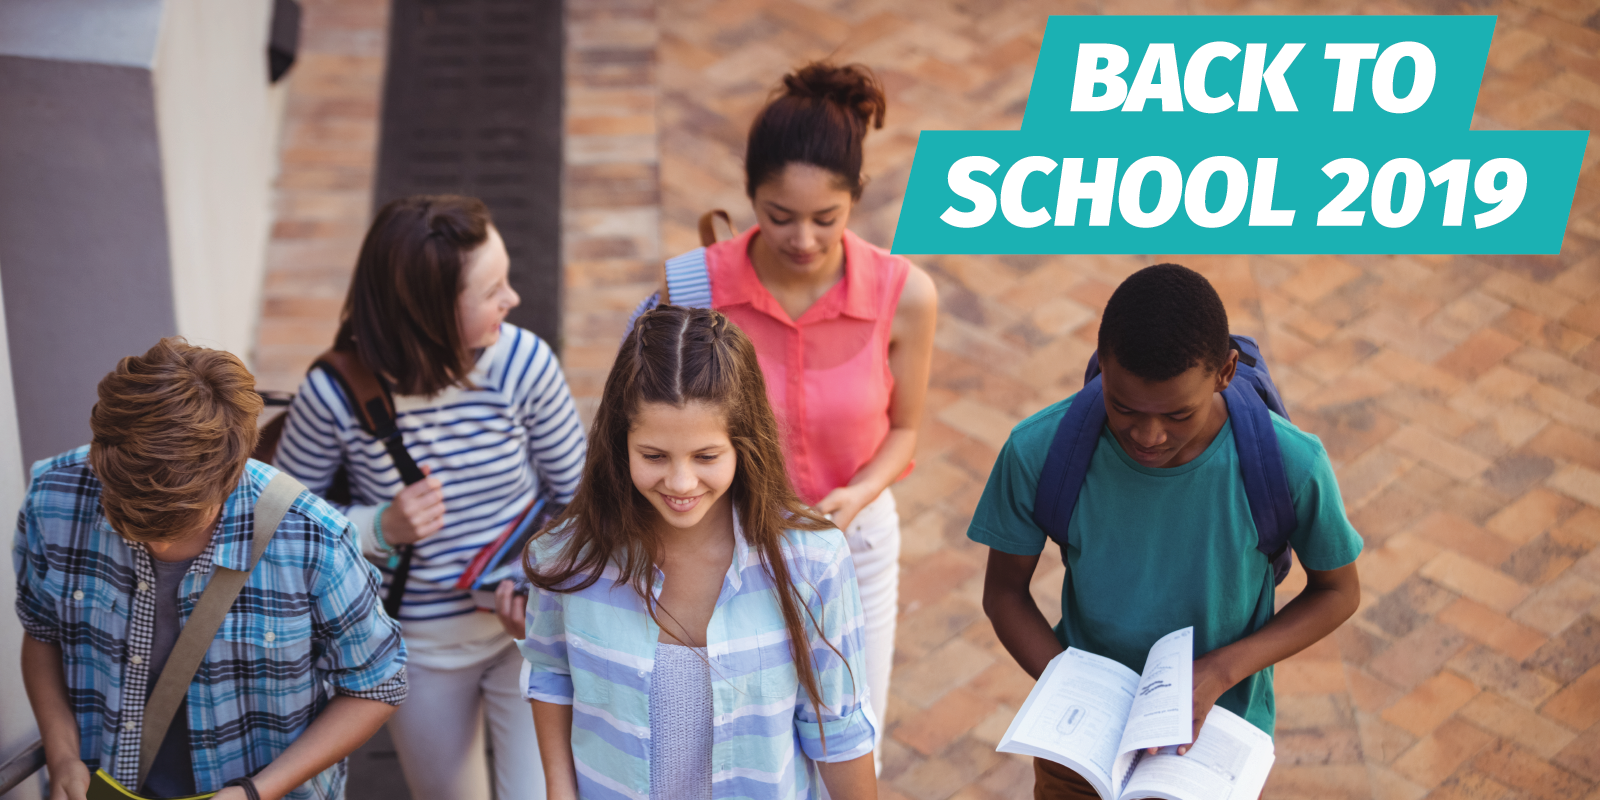 2019 Back to School Toolkit